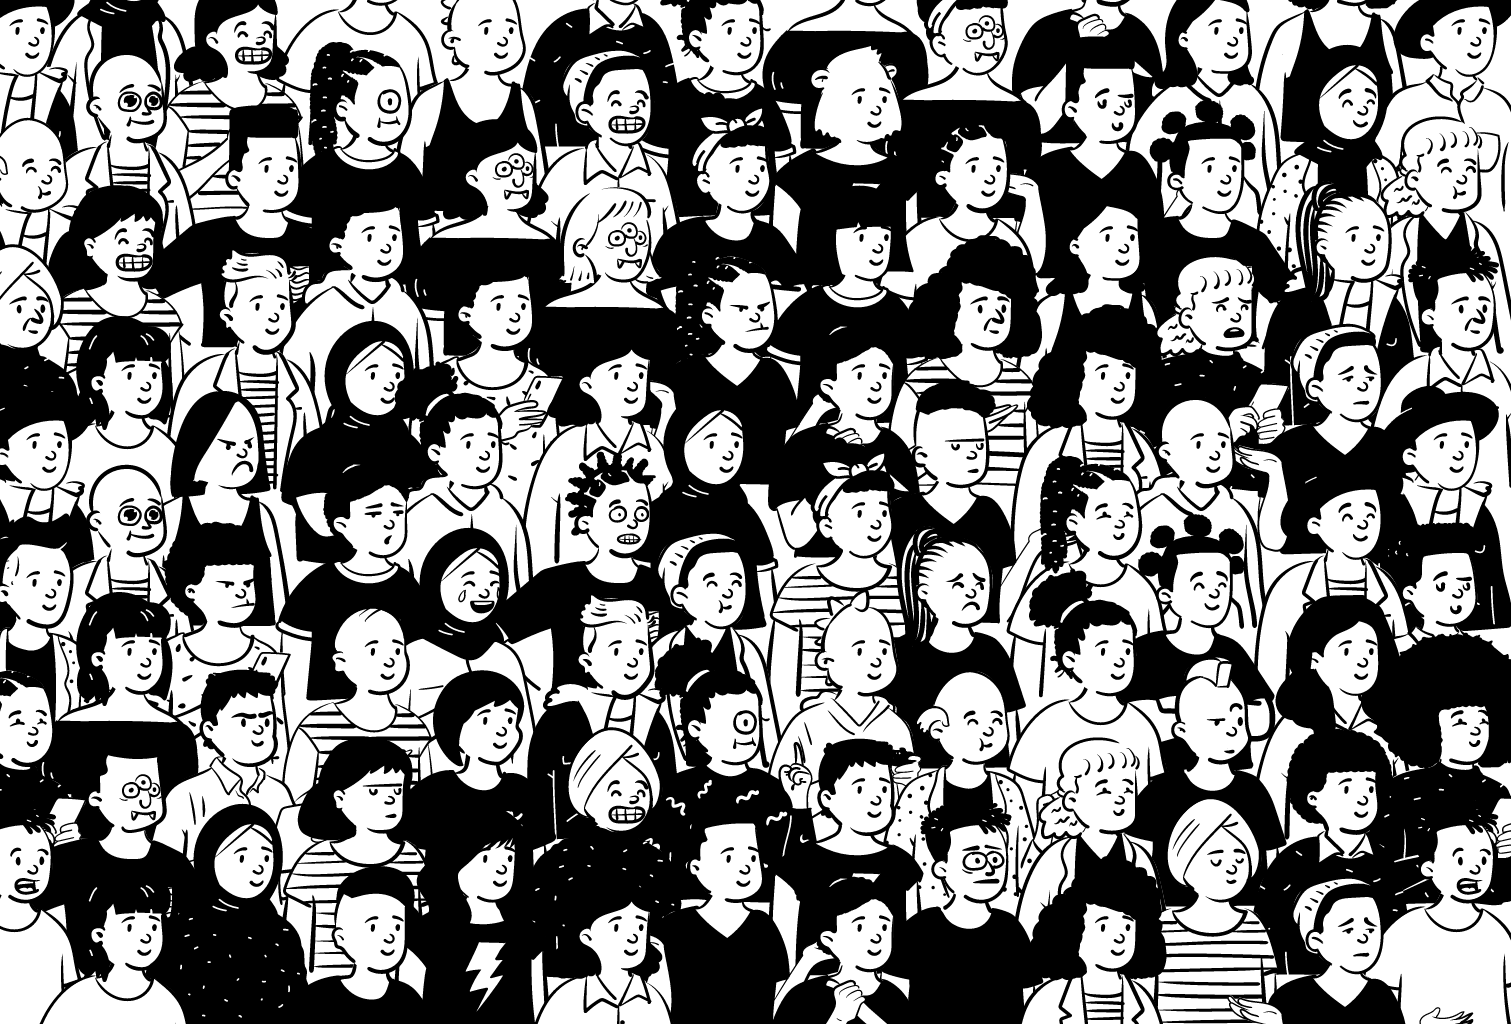 An image showing a large collection of monochrome avatars, each with a different hairstyle, facial expression and hair style